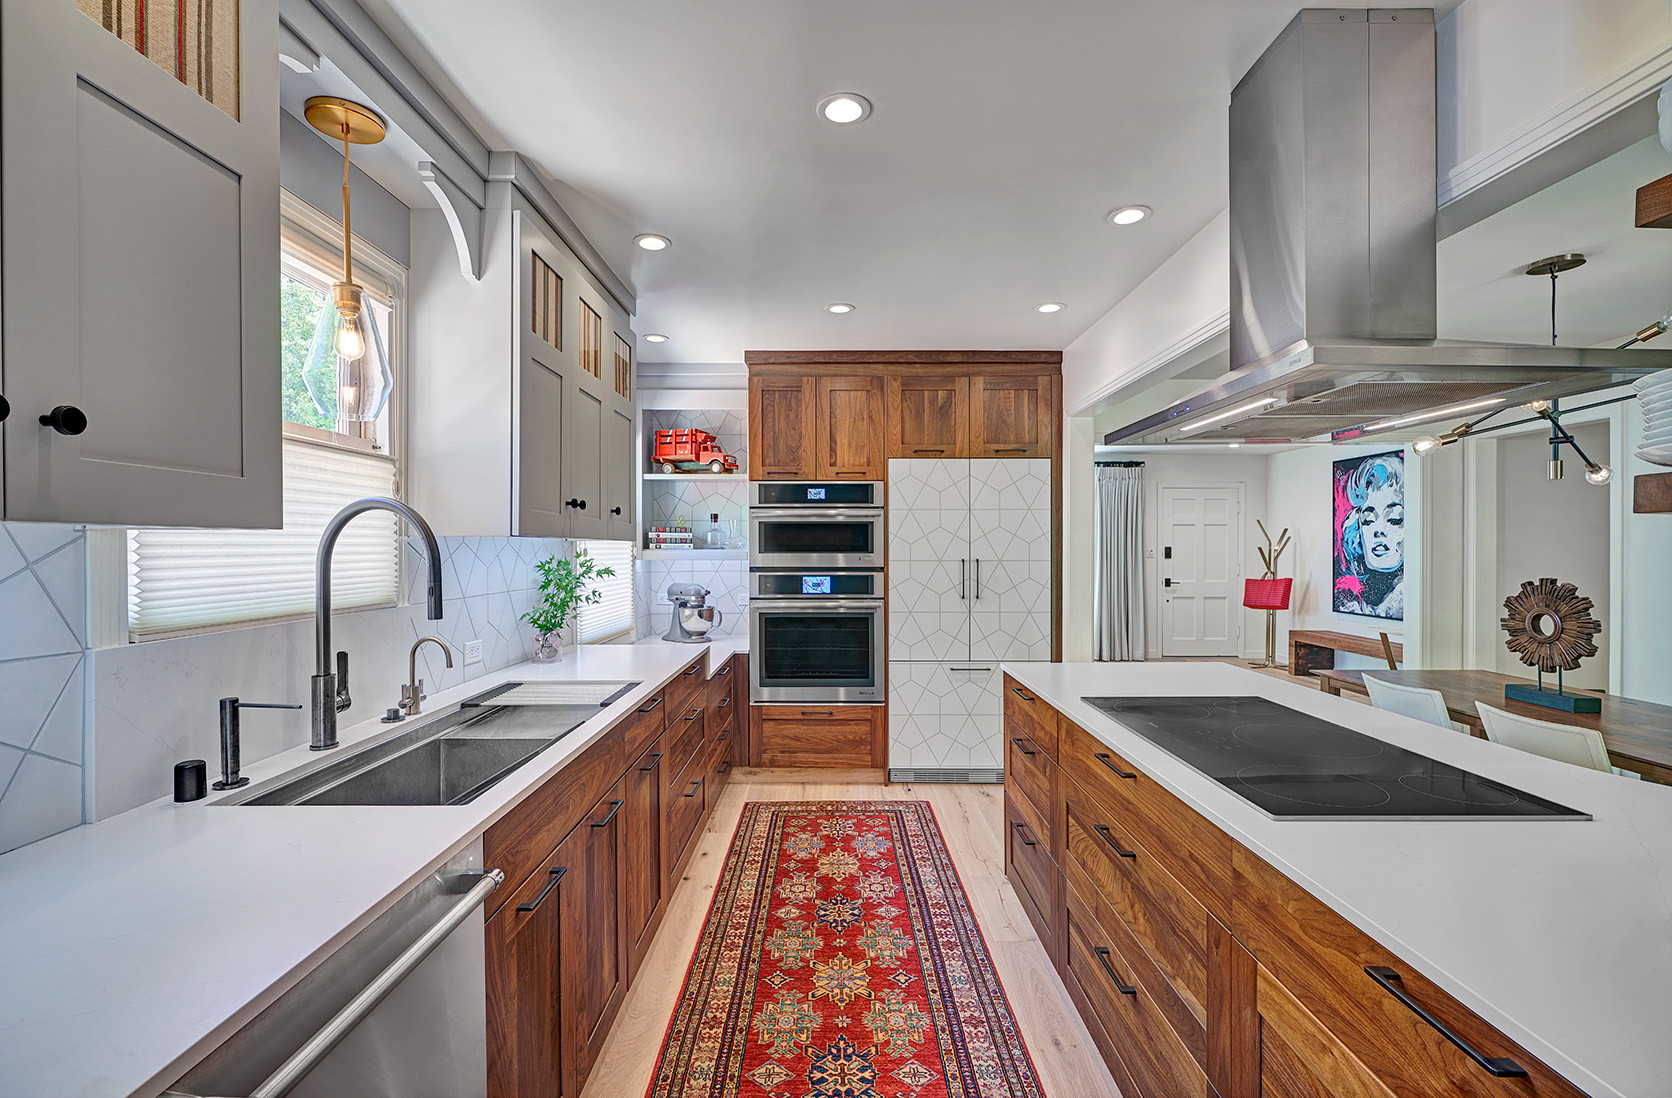 75 Beautiful Kitchen Pictures Ideas January 2021 Houzz